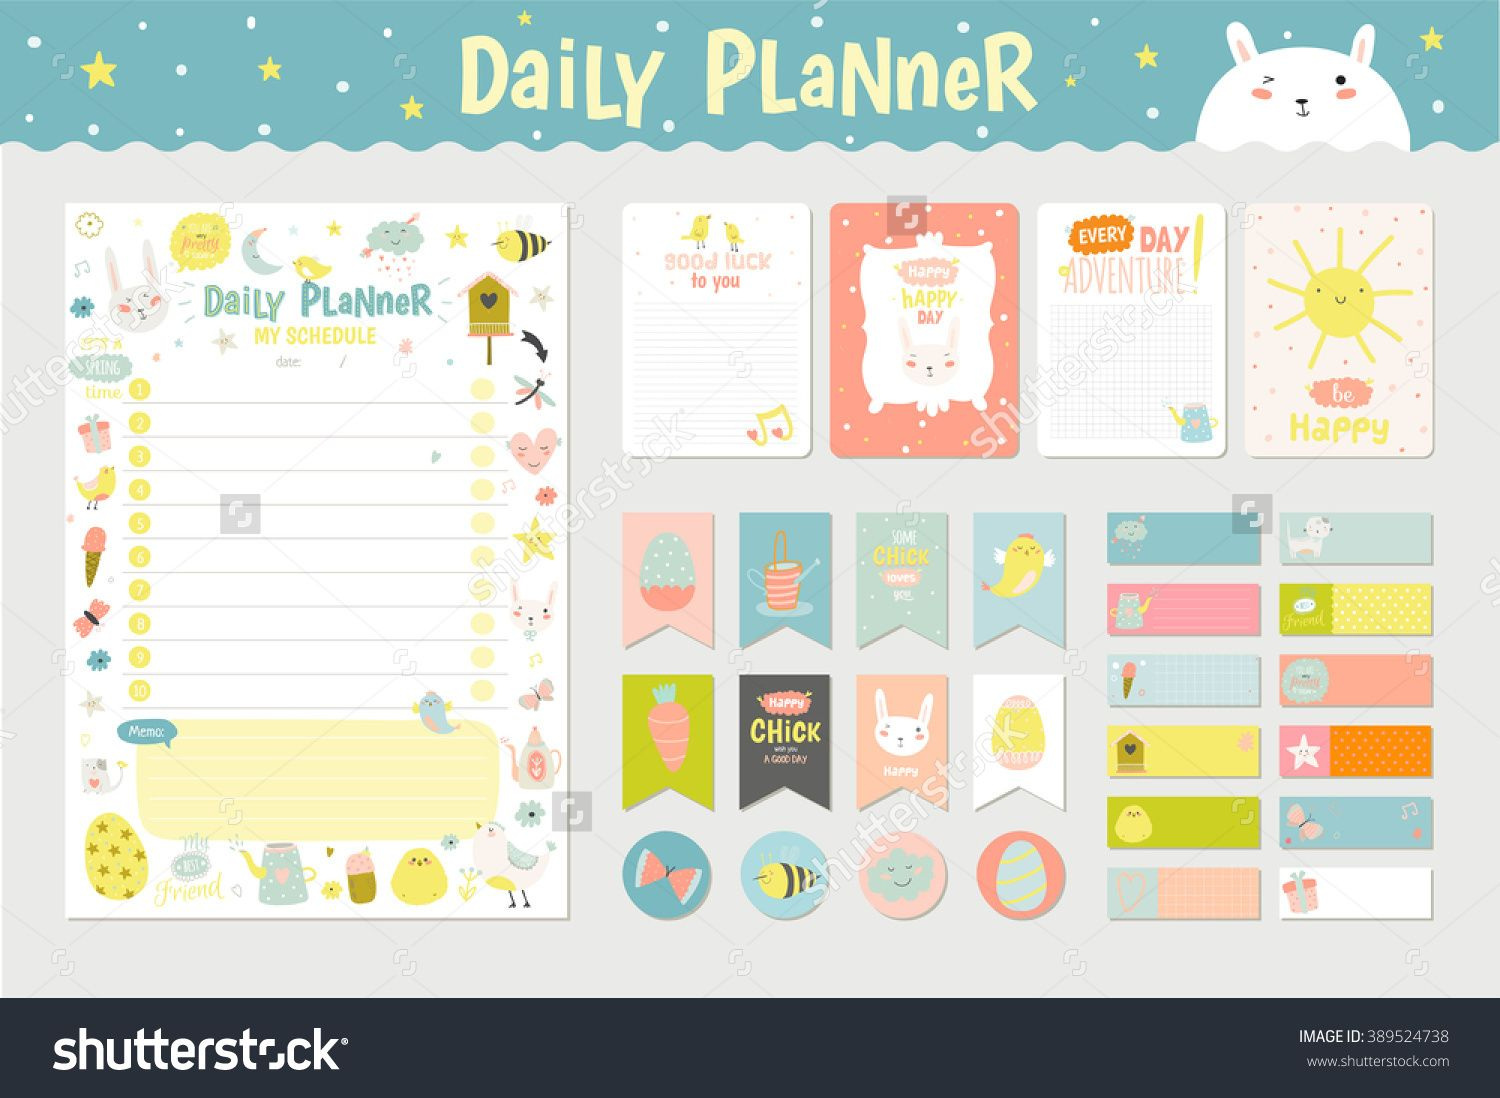 Pin By Julia  On Daily Planner    Planners